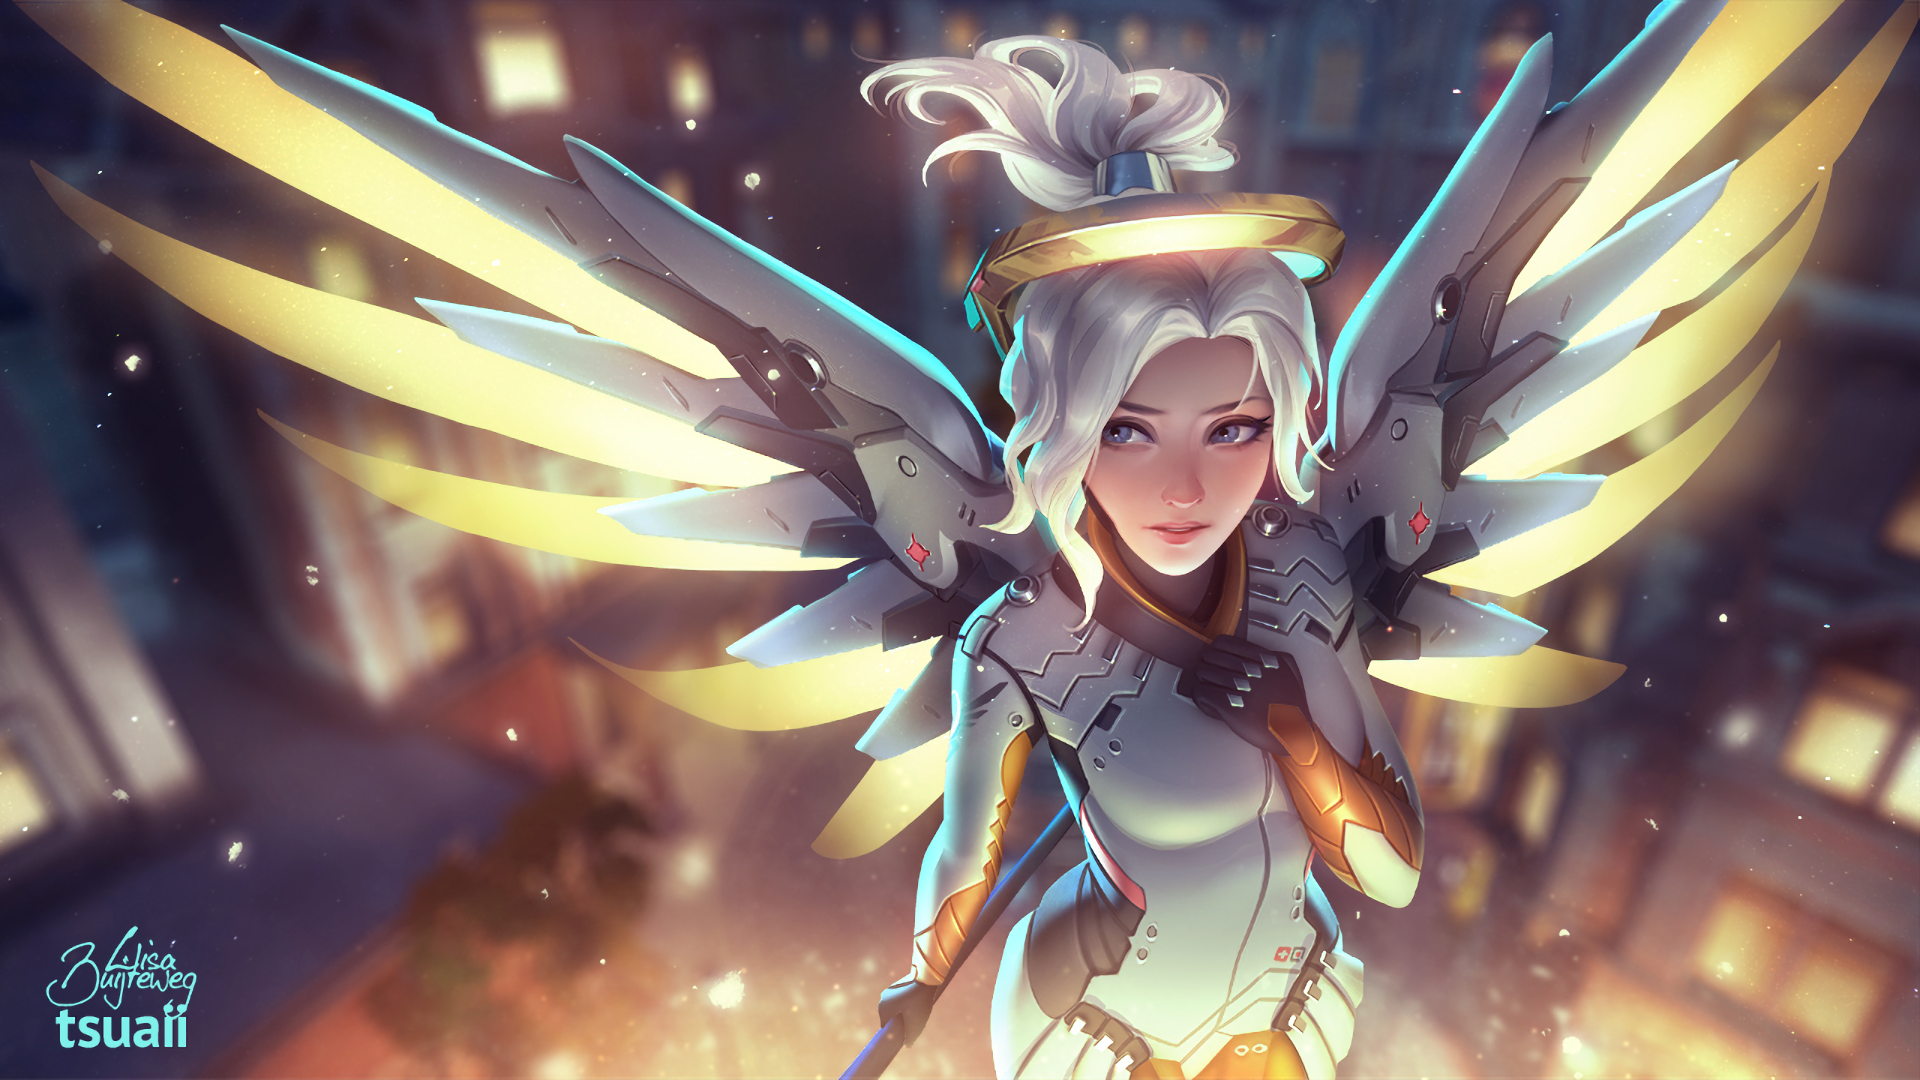 Overwatch Wallpaper 1080p Download Free Cool High: Fondos De Overwatch, Wallpapers De Overwatch Gratis